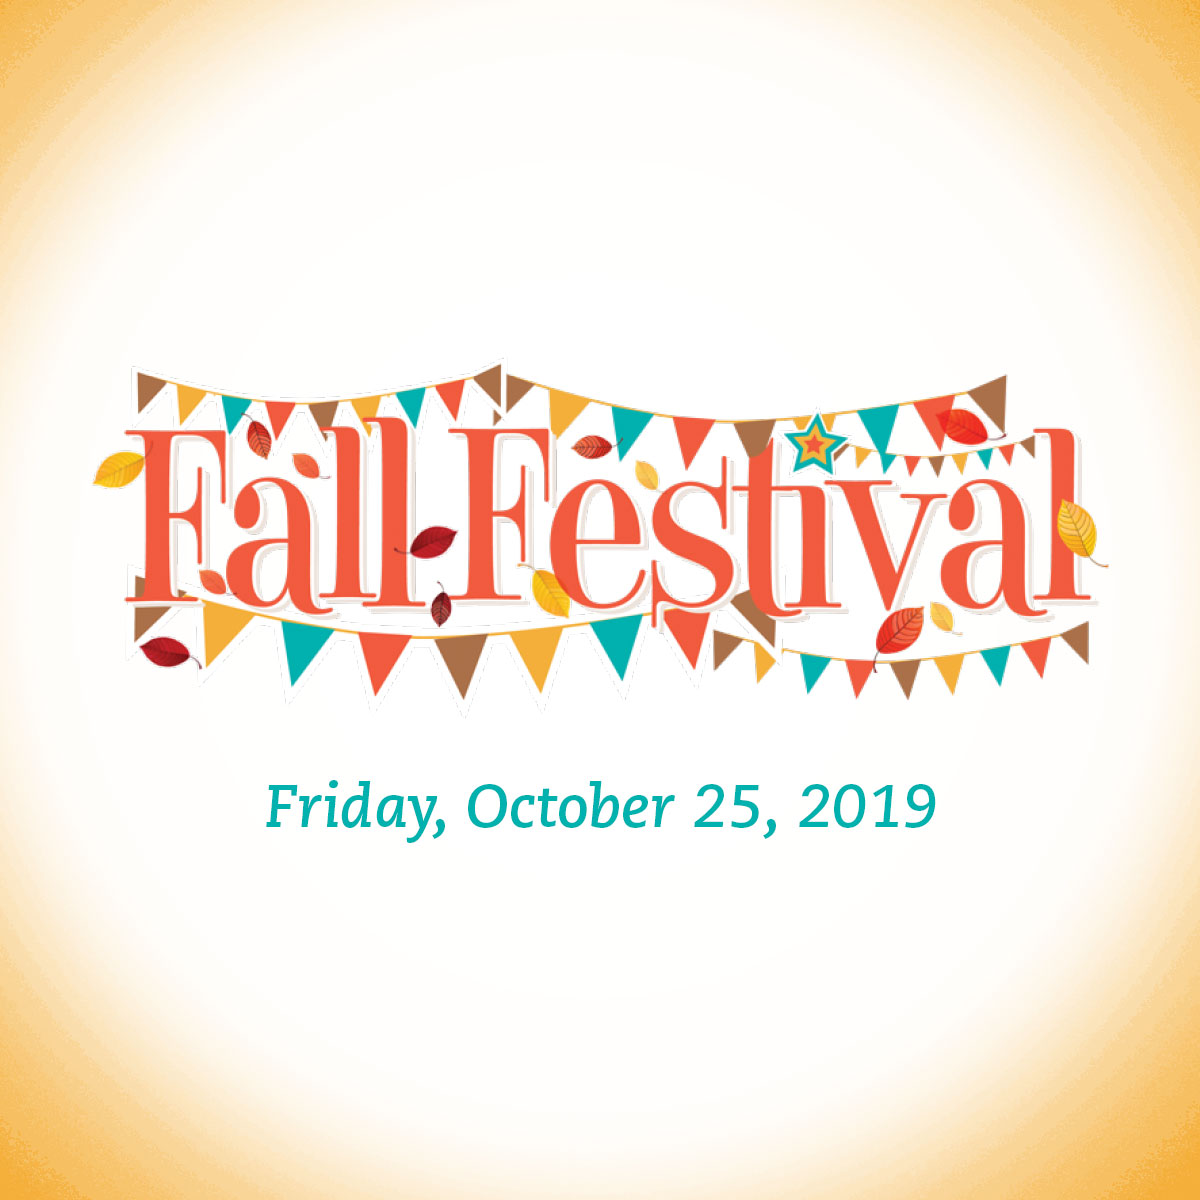 Fall Festival: Friday, October 25, 2019